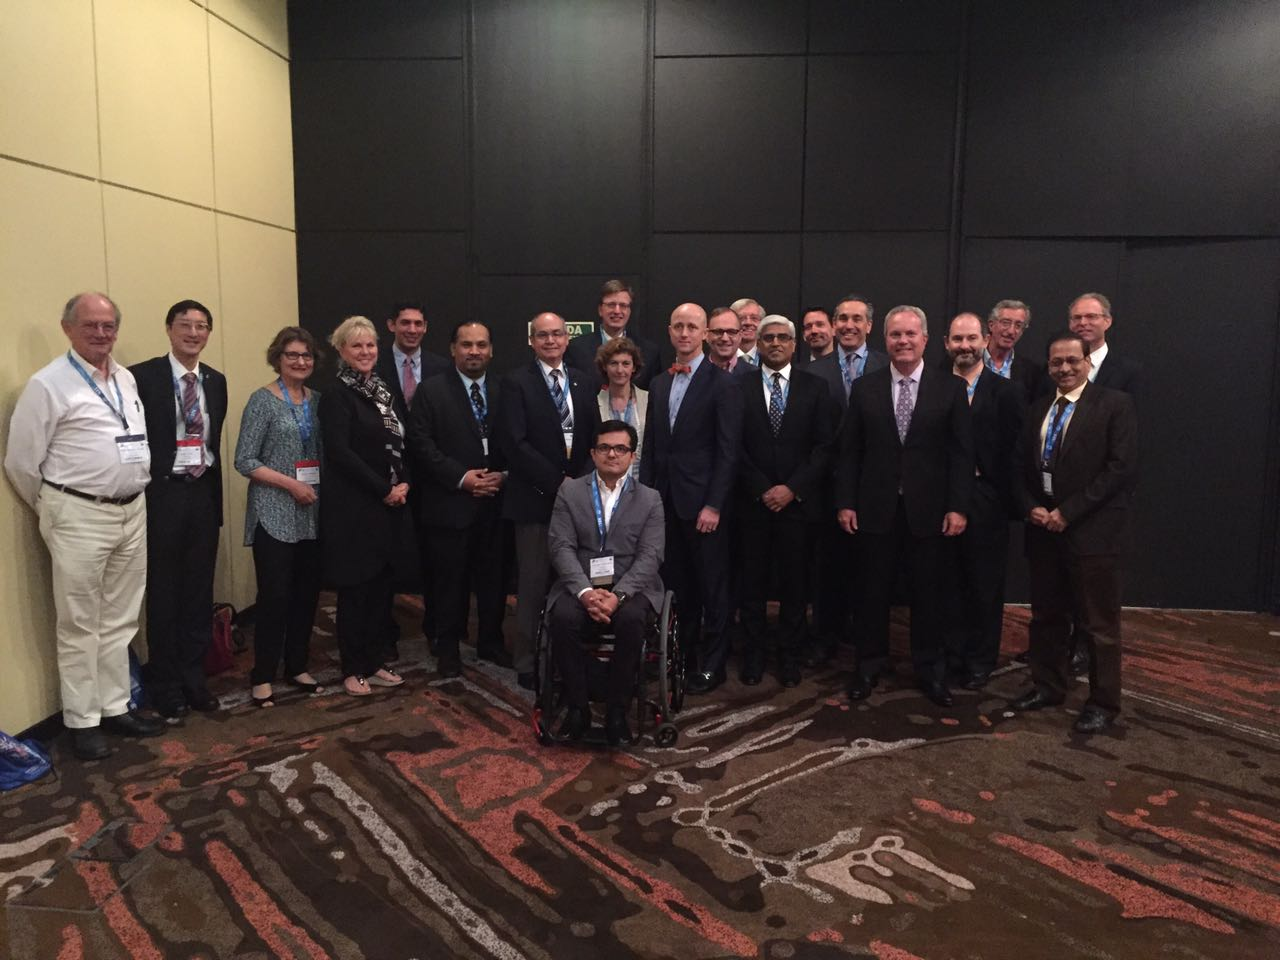 International consultation on Urological disecases. SIU annual meeting. Buenos Aires. Argentina. 2016